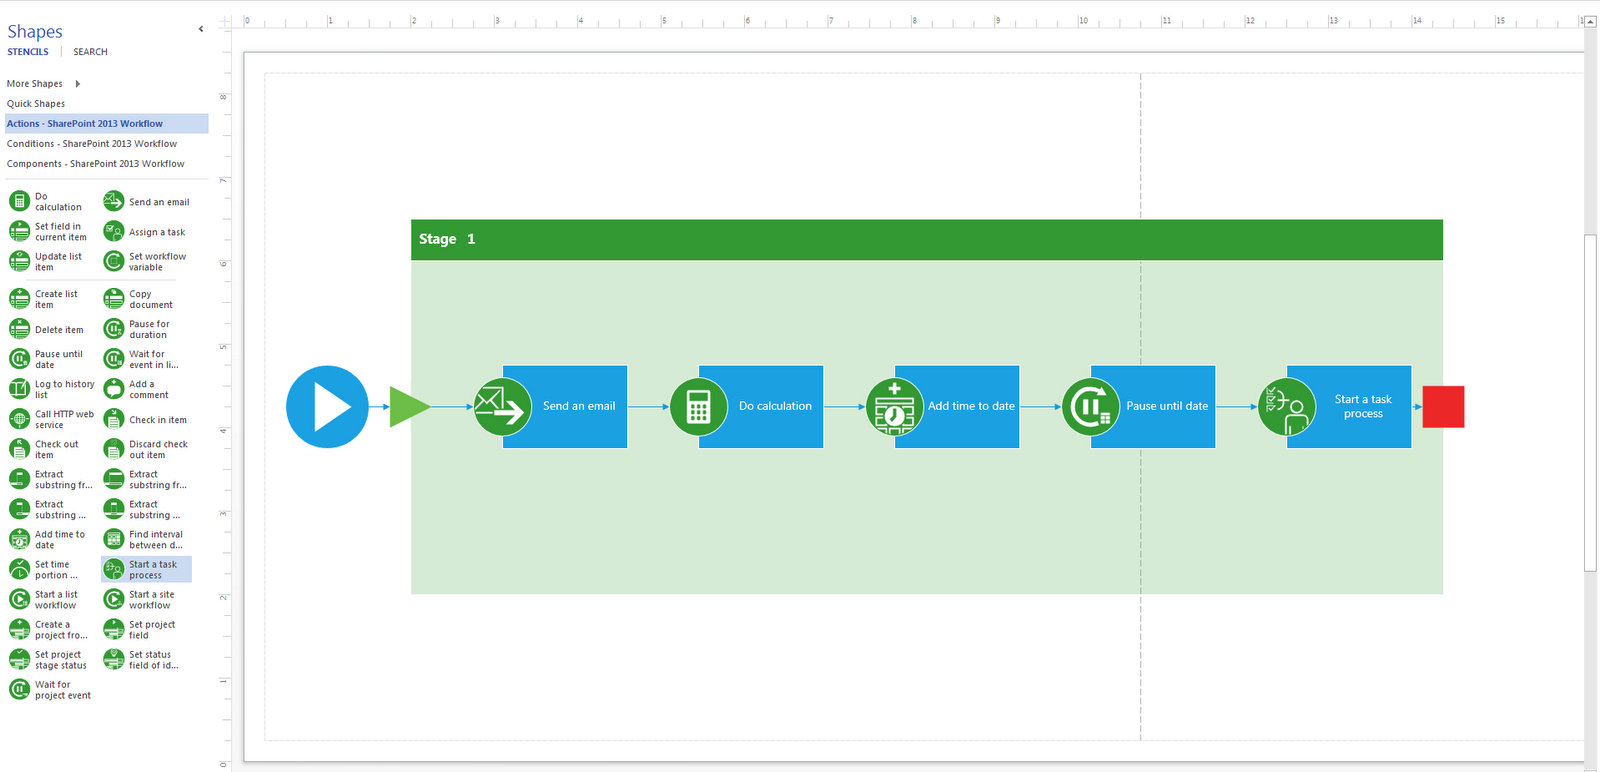 How to make SharePoint 2010 support Visio 2013 files (.vsdx)?